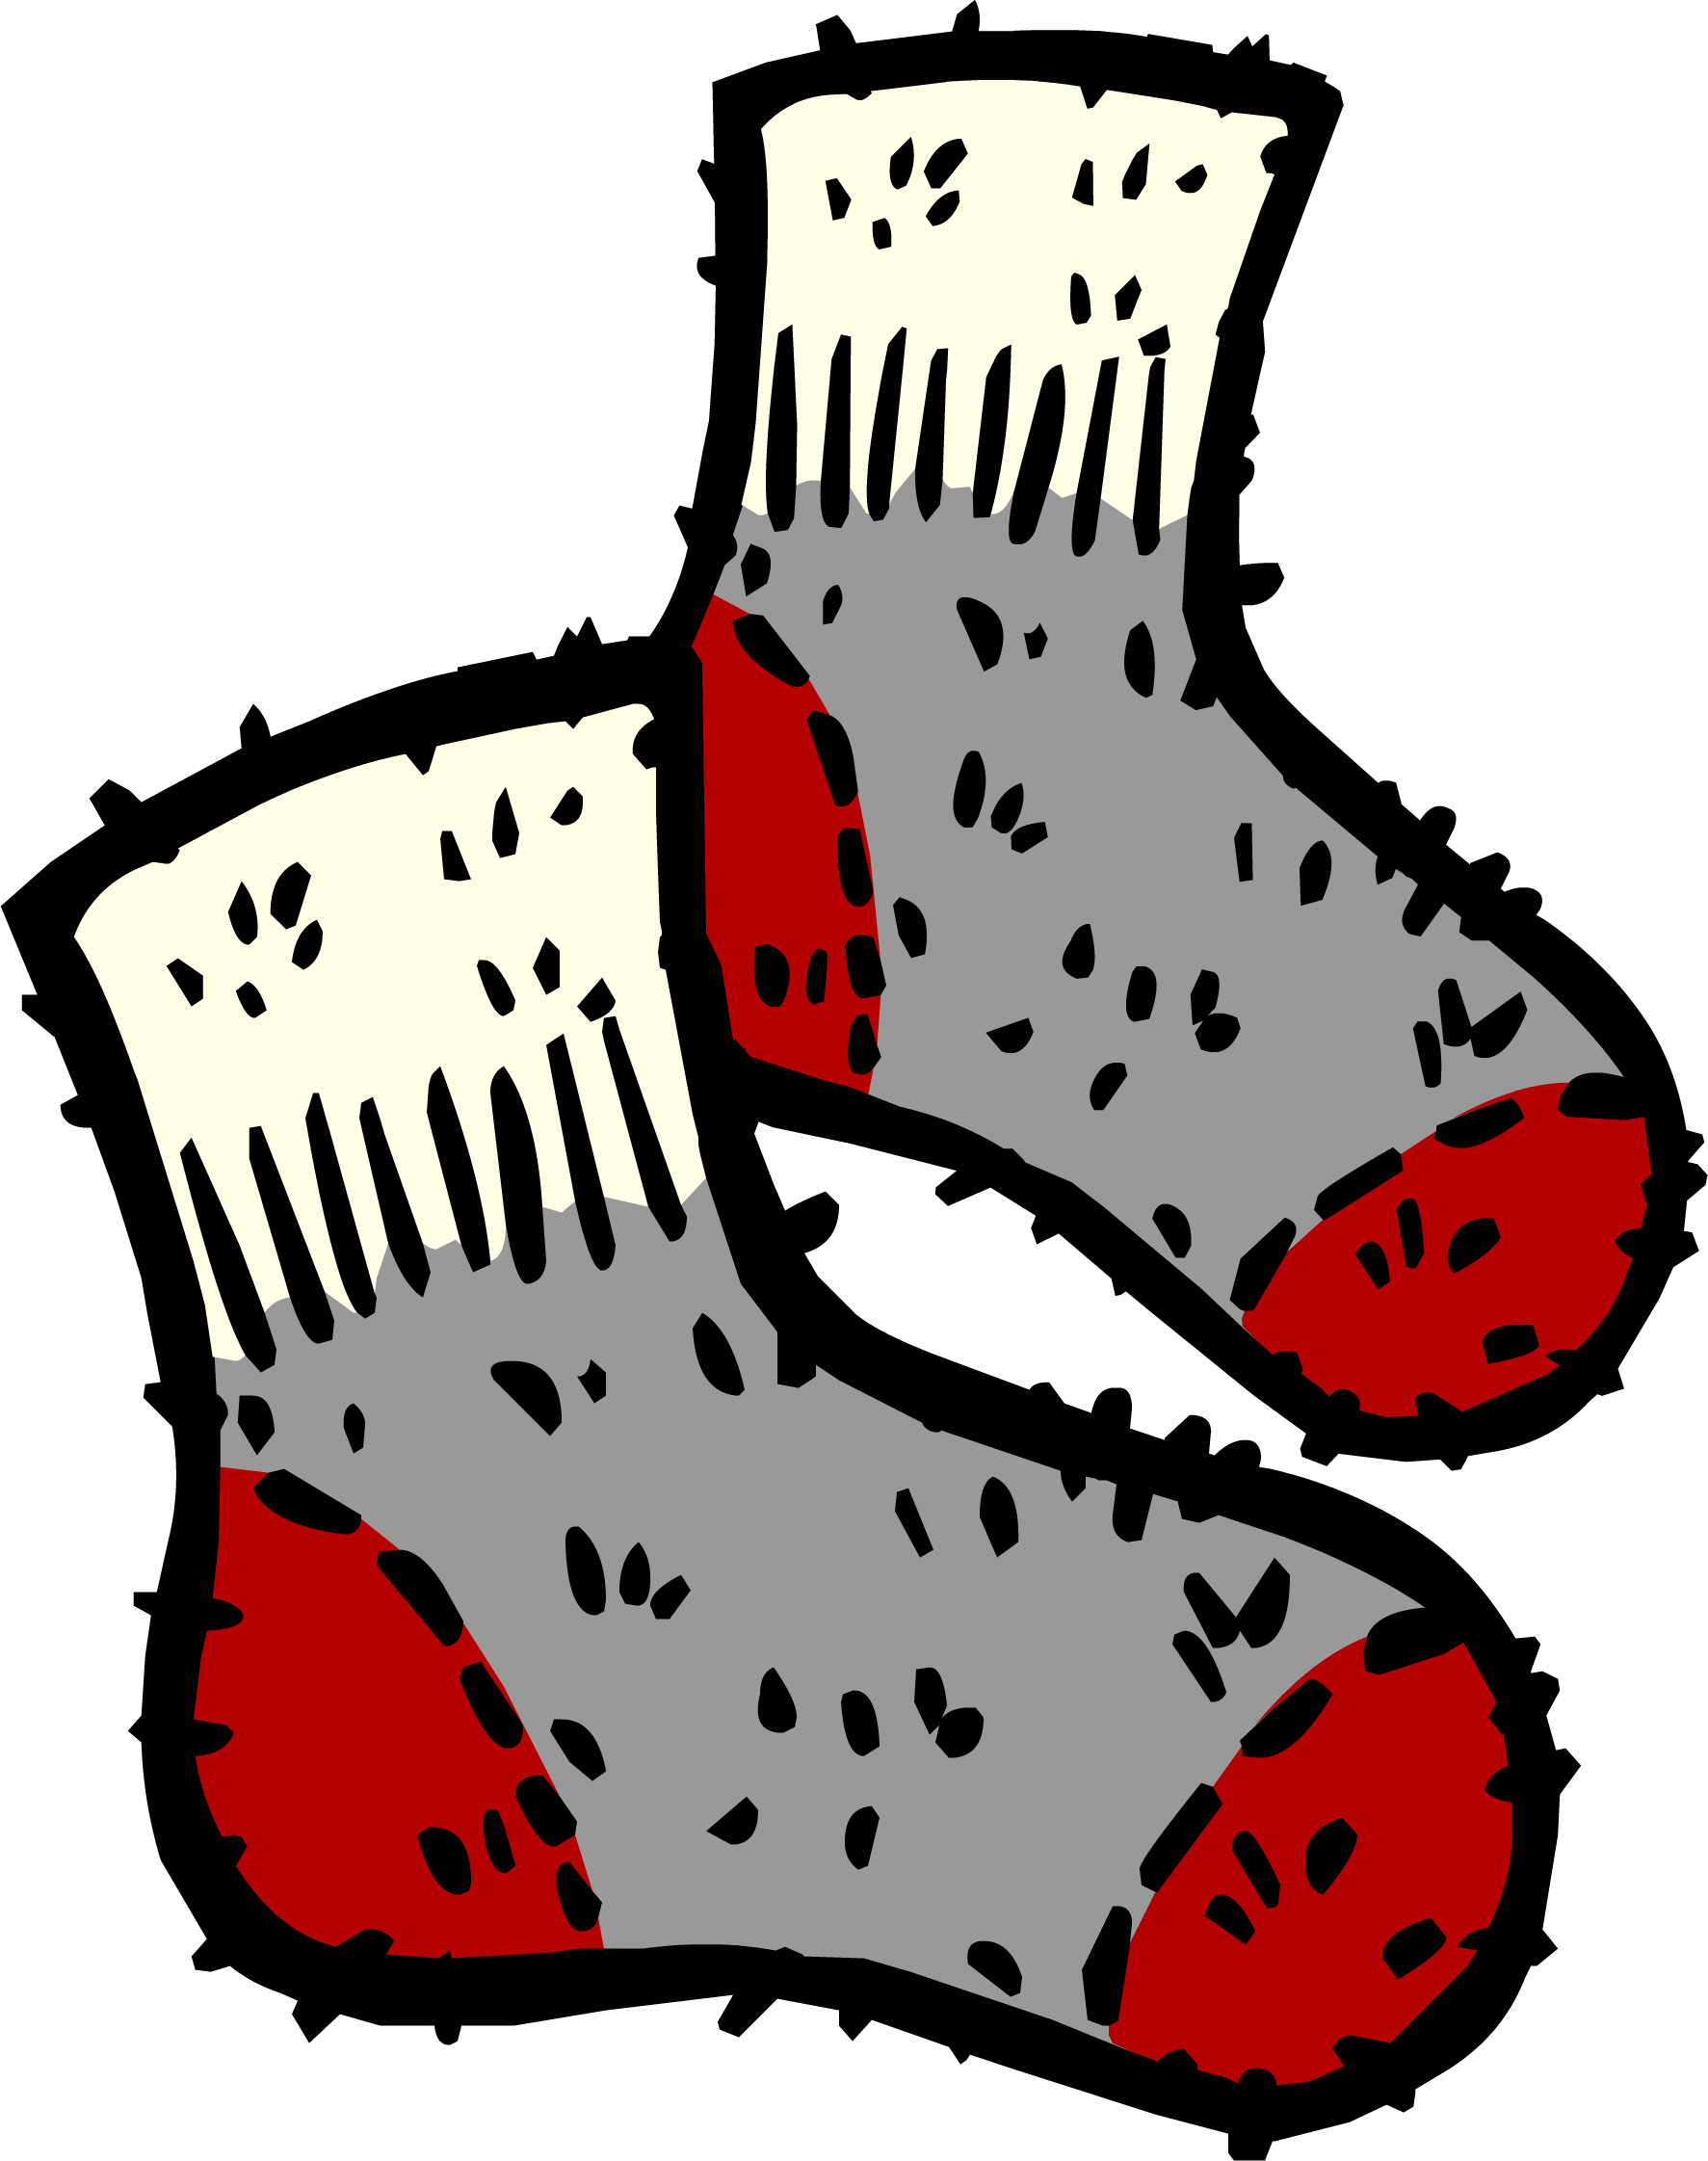 Sock clipart wool sock. Socks club penguin rewritten